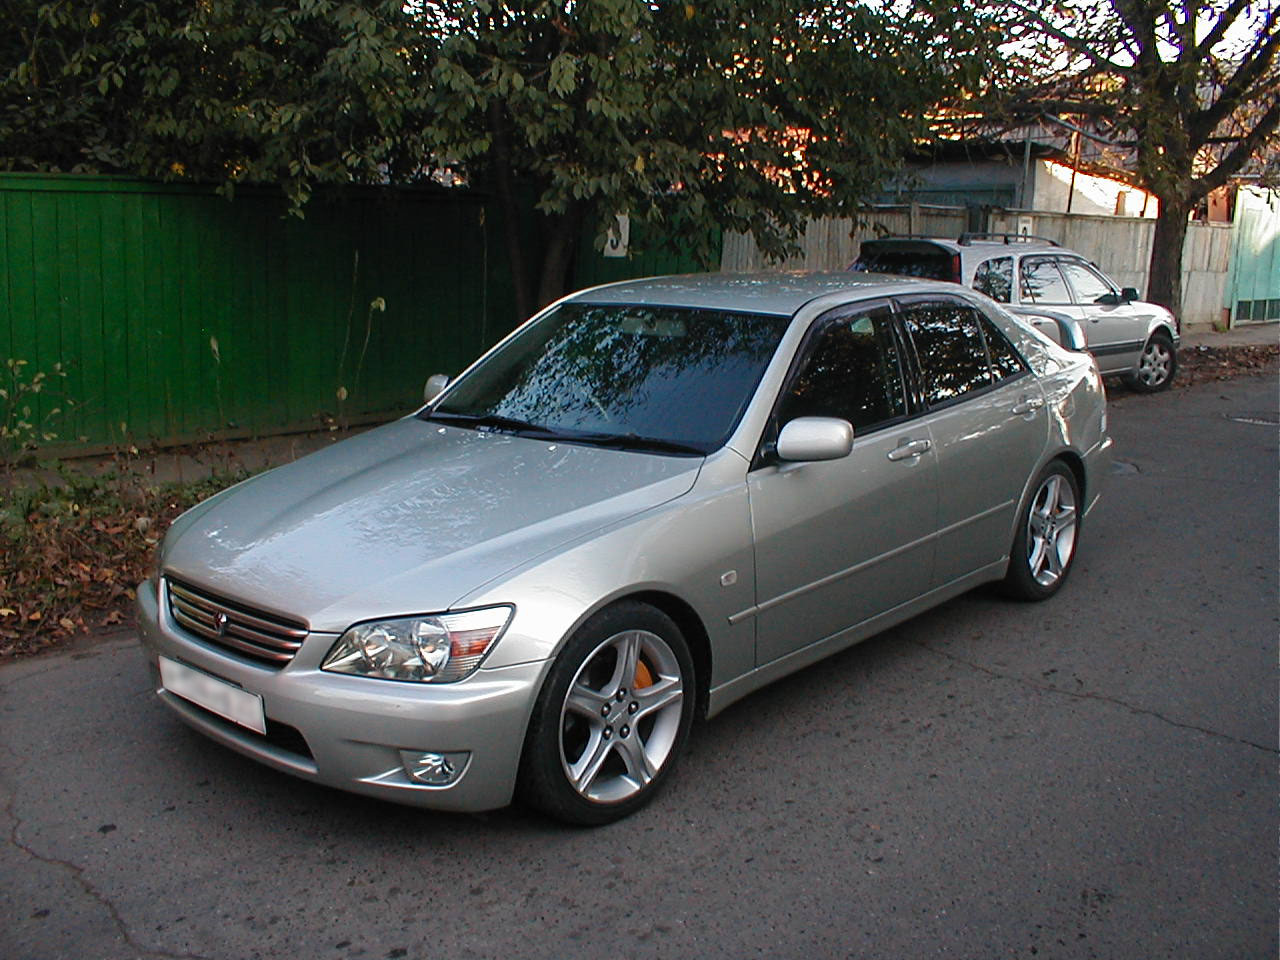 Lexus IS 200 2001 photo - 1